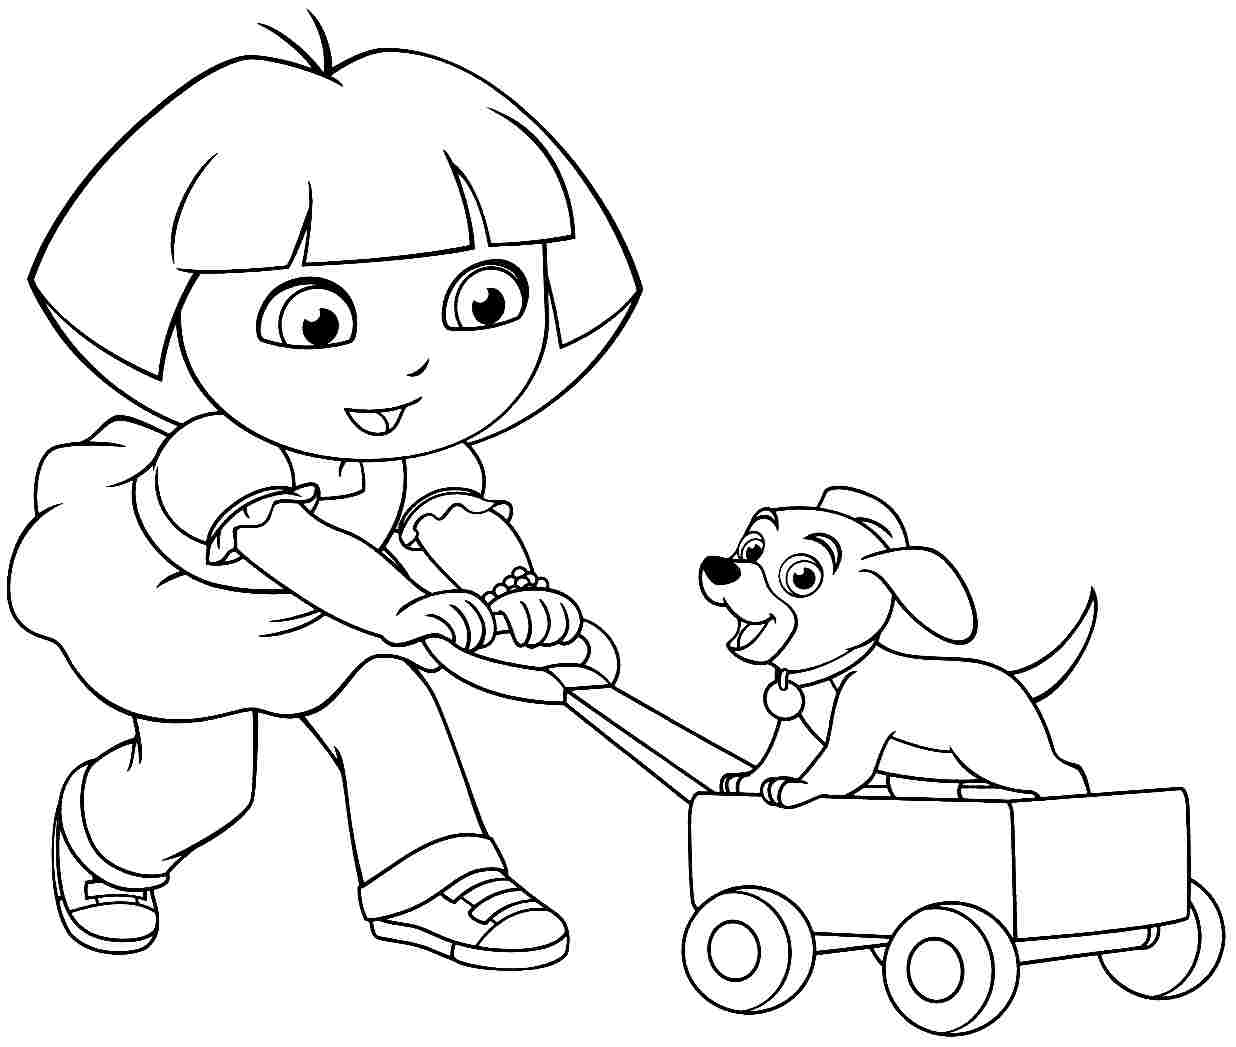 coloring pages dora and friends dora and friends coloring pages to download and print for free pages dora and friends coloring